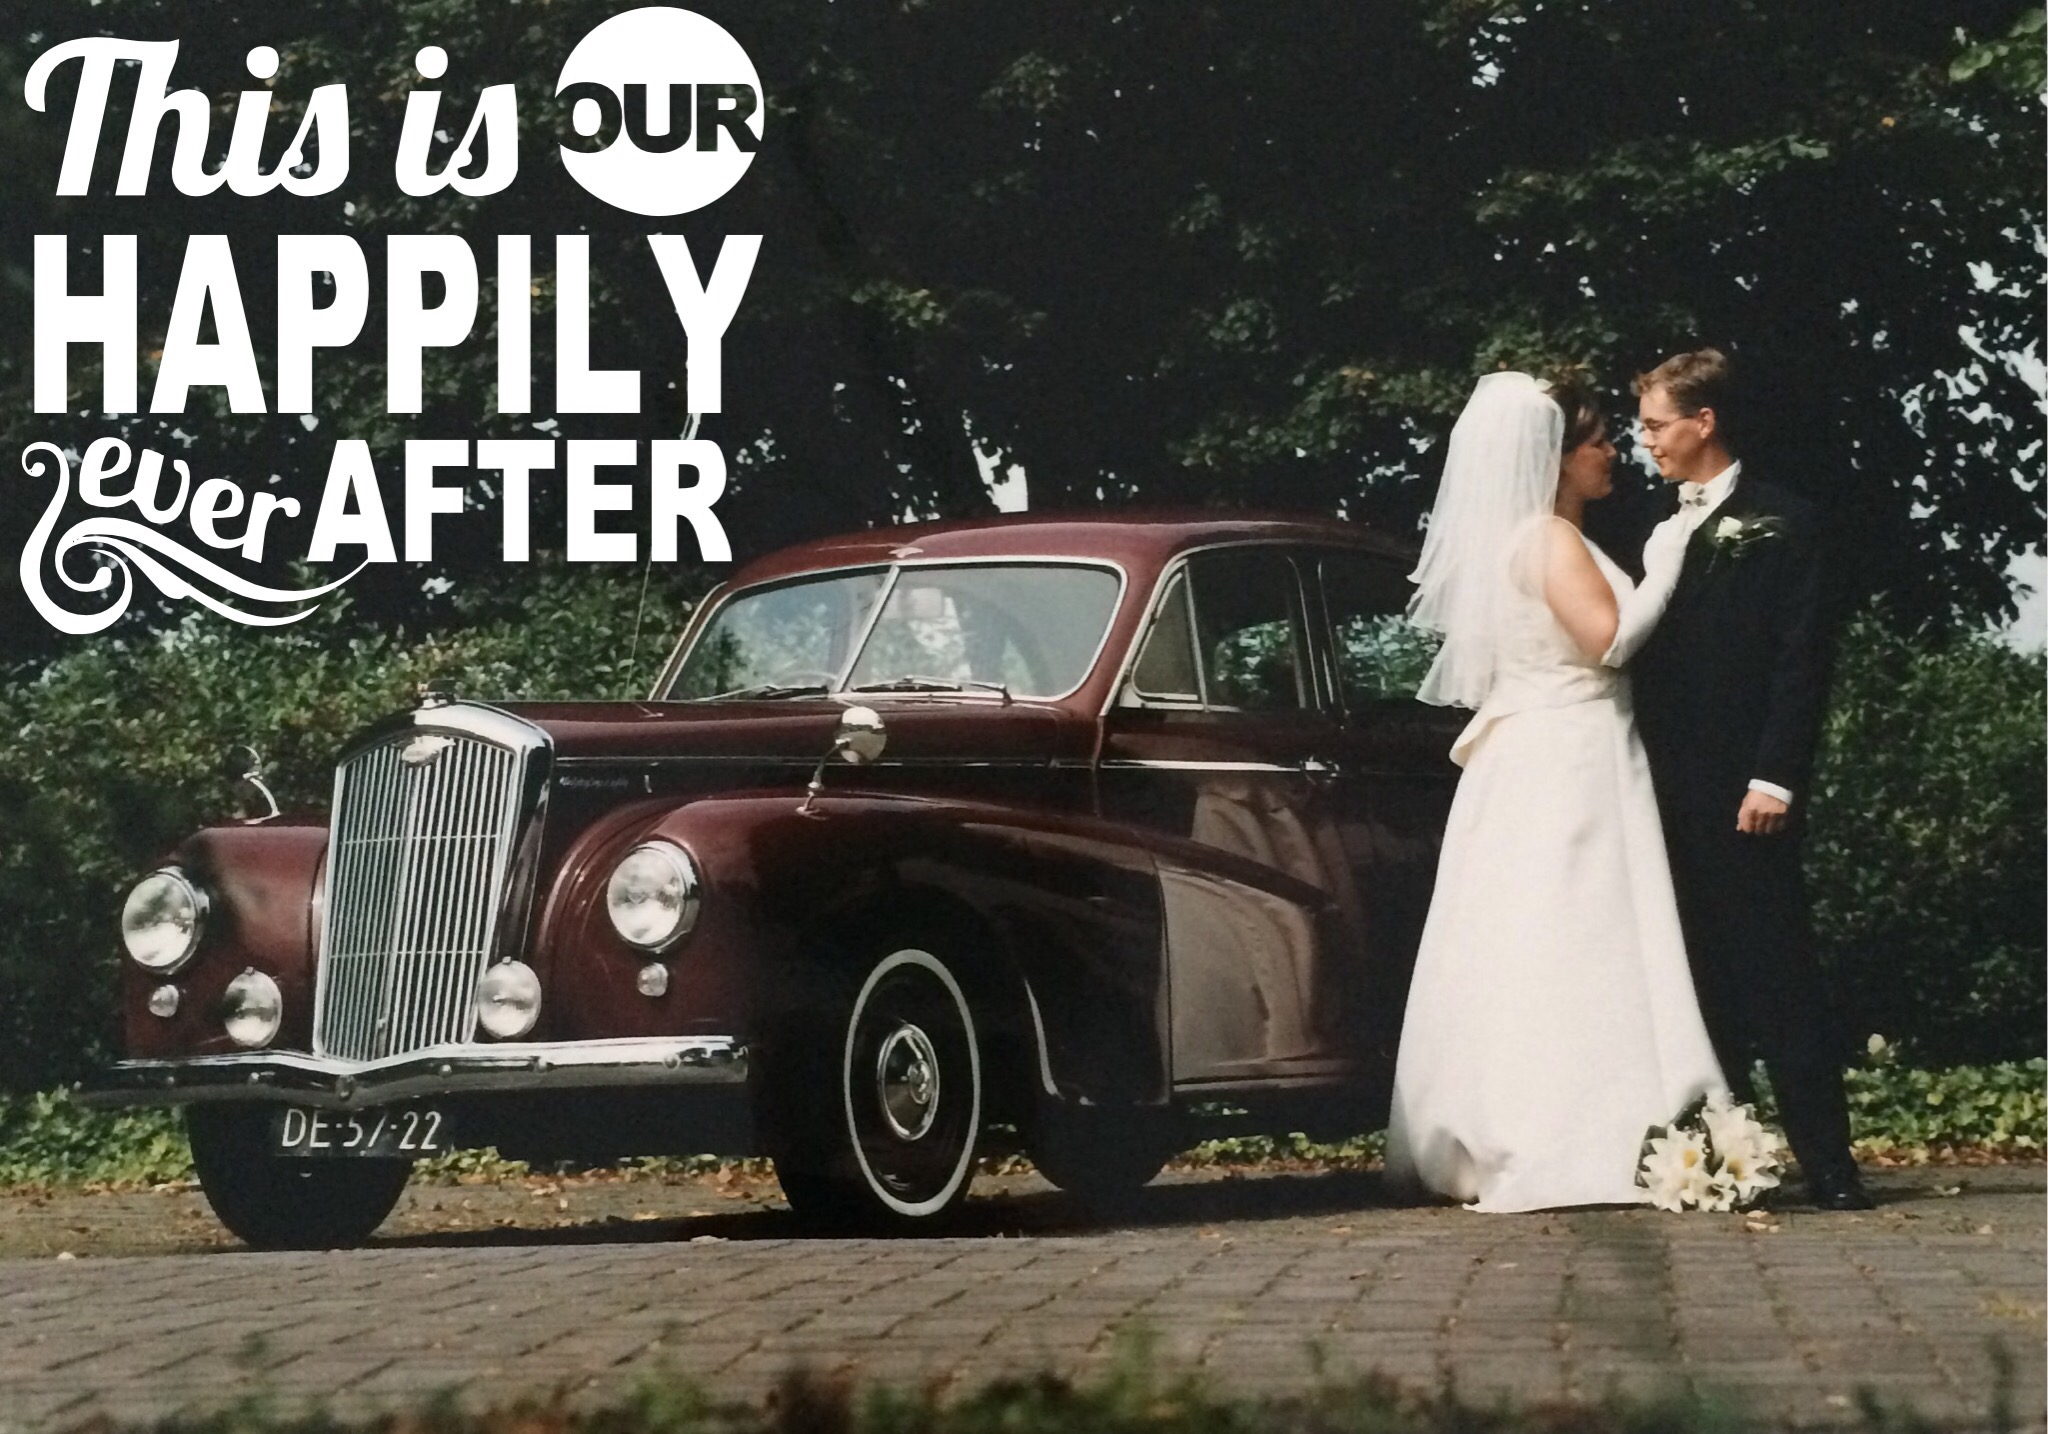 Our happily ever after starts here